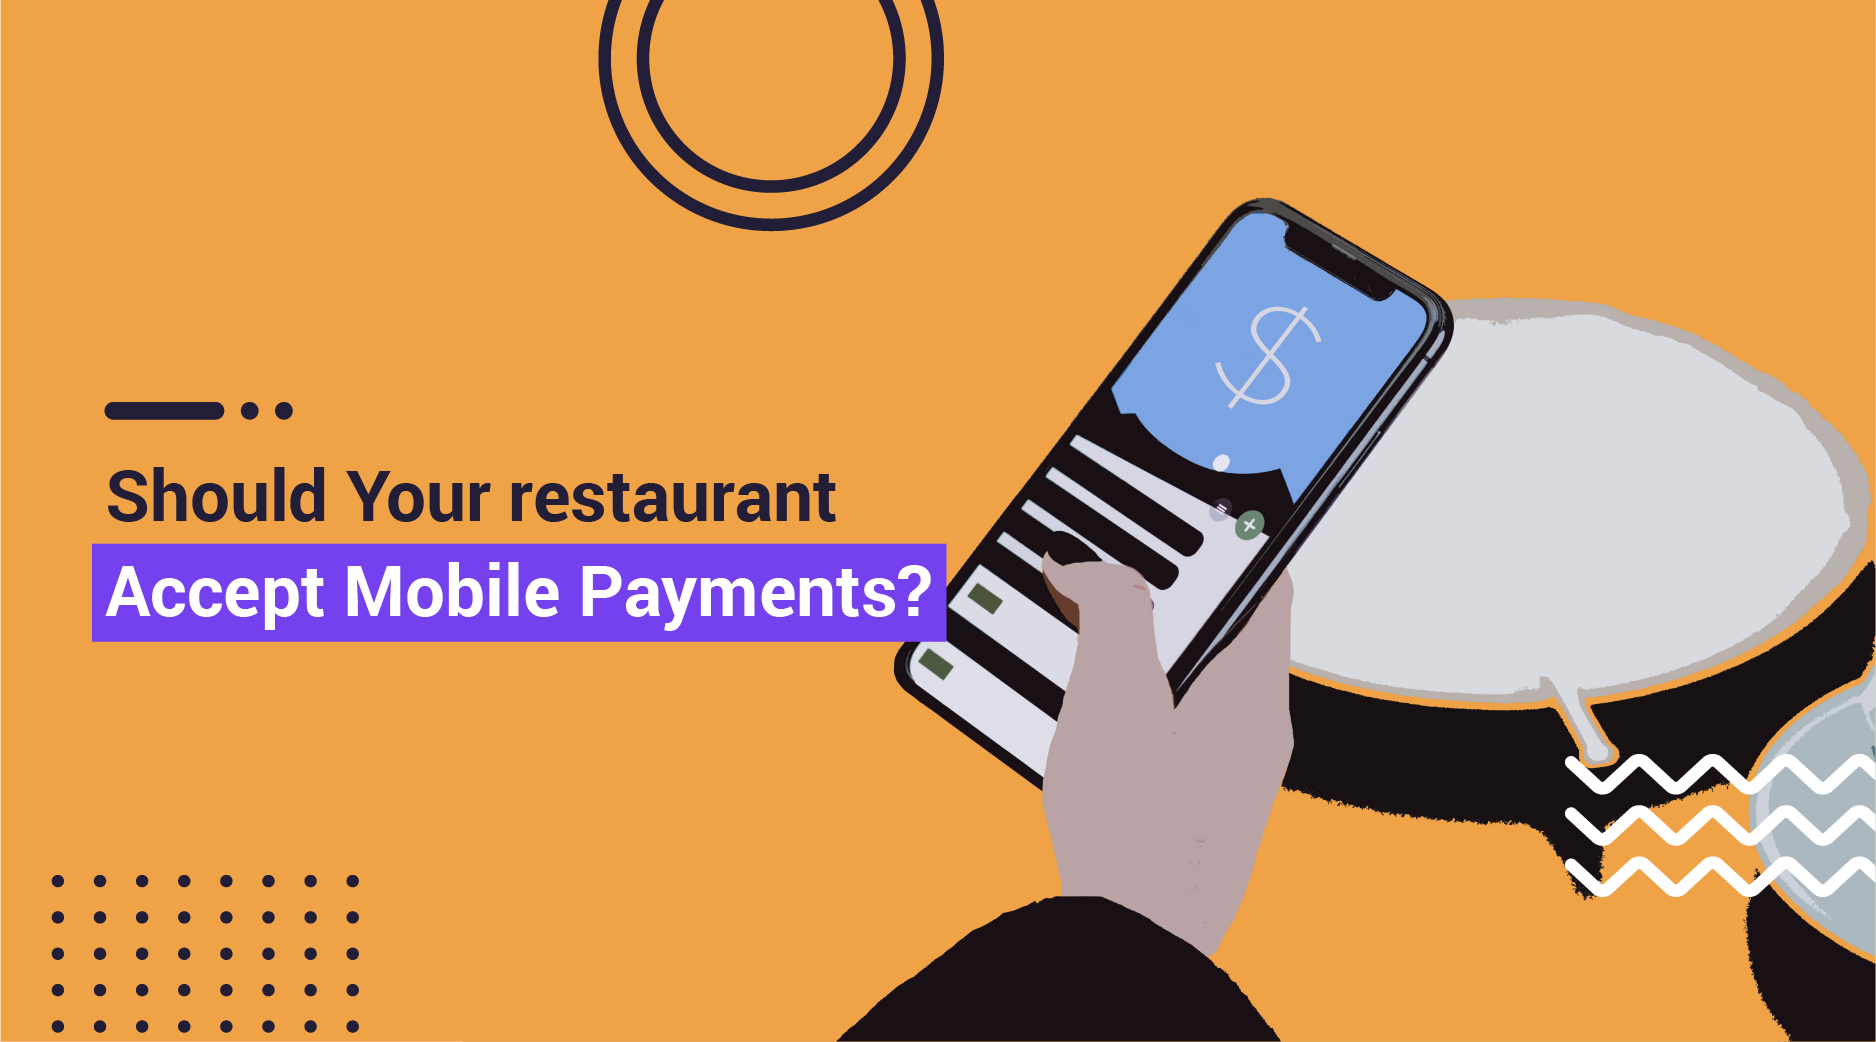 Should Your Restaurant Accept Mobile Ordering?